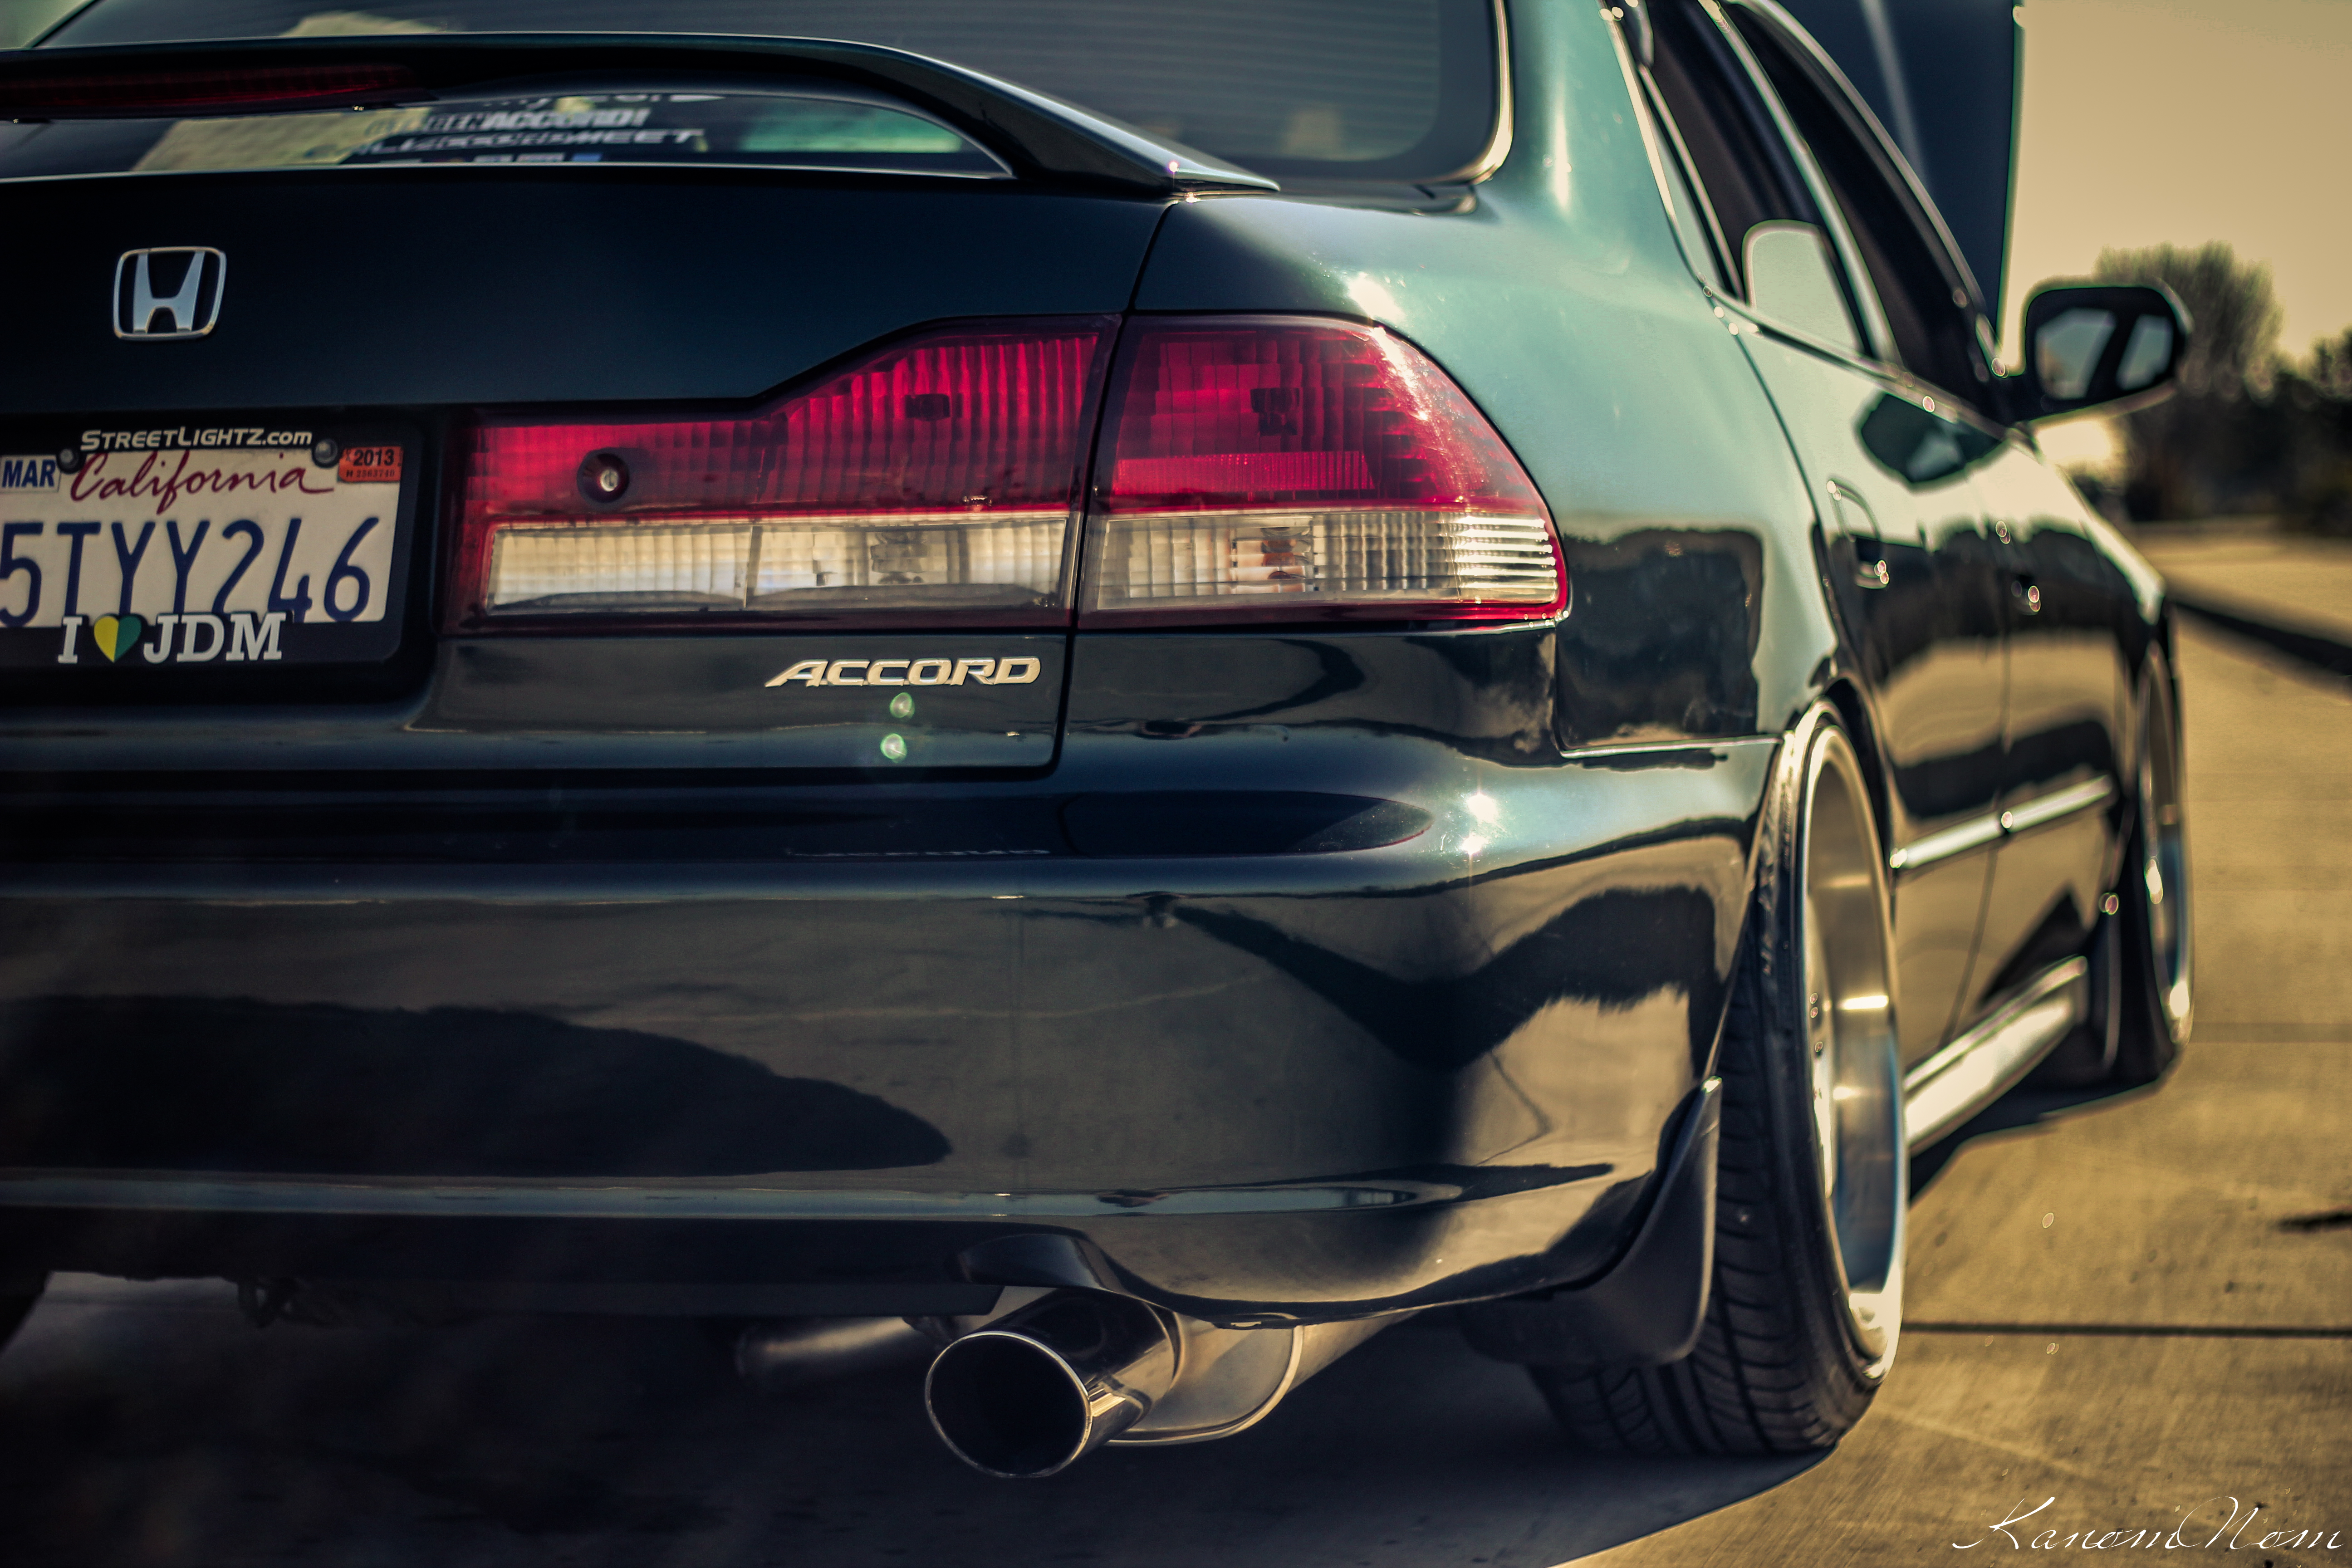 (Updated 1/18/13)20-CG-01 Accord. Progress from stock to modded. - 6th Gen Accord DIY and ...